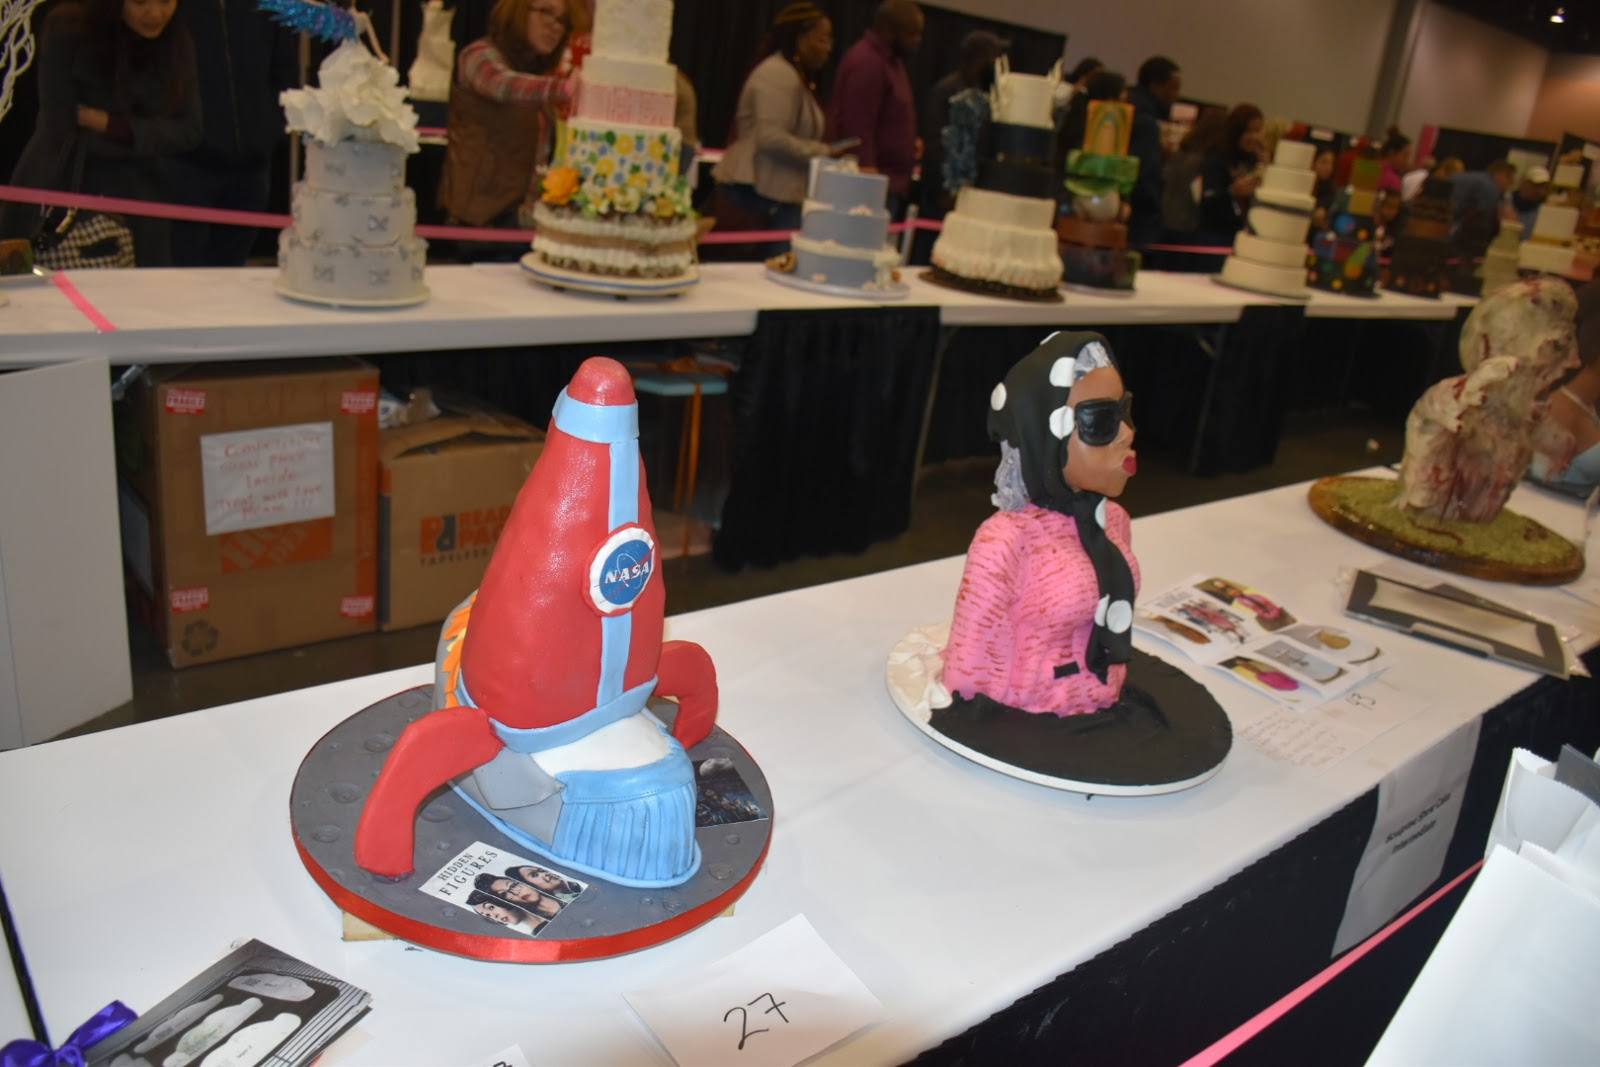 The Ultimate Sugar Show Atlanta Giving Inspiration to Future Kid Bakers Like My Daughter  via  www.productreviewmom.com